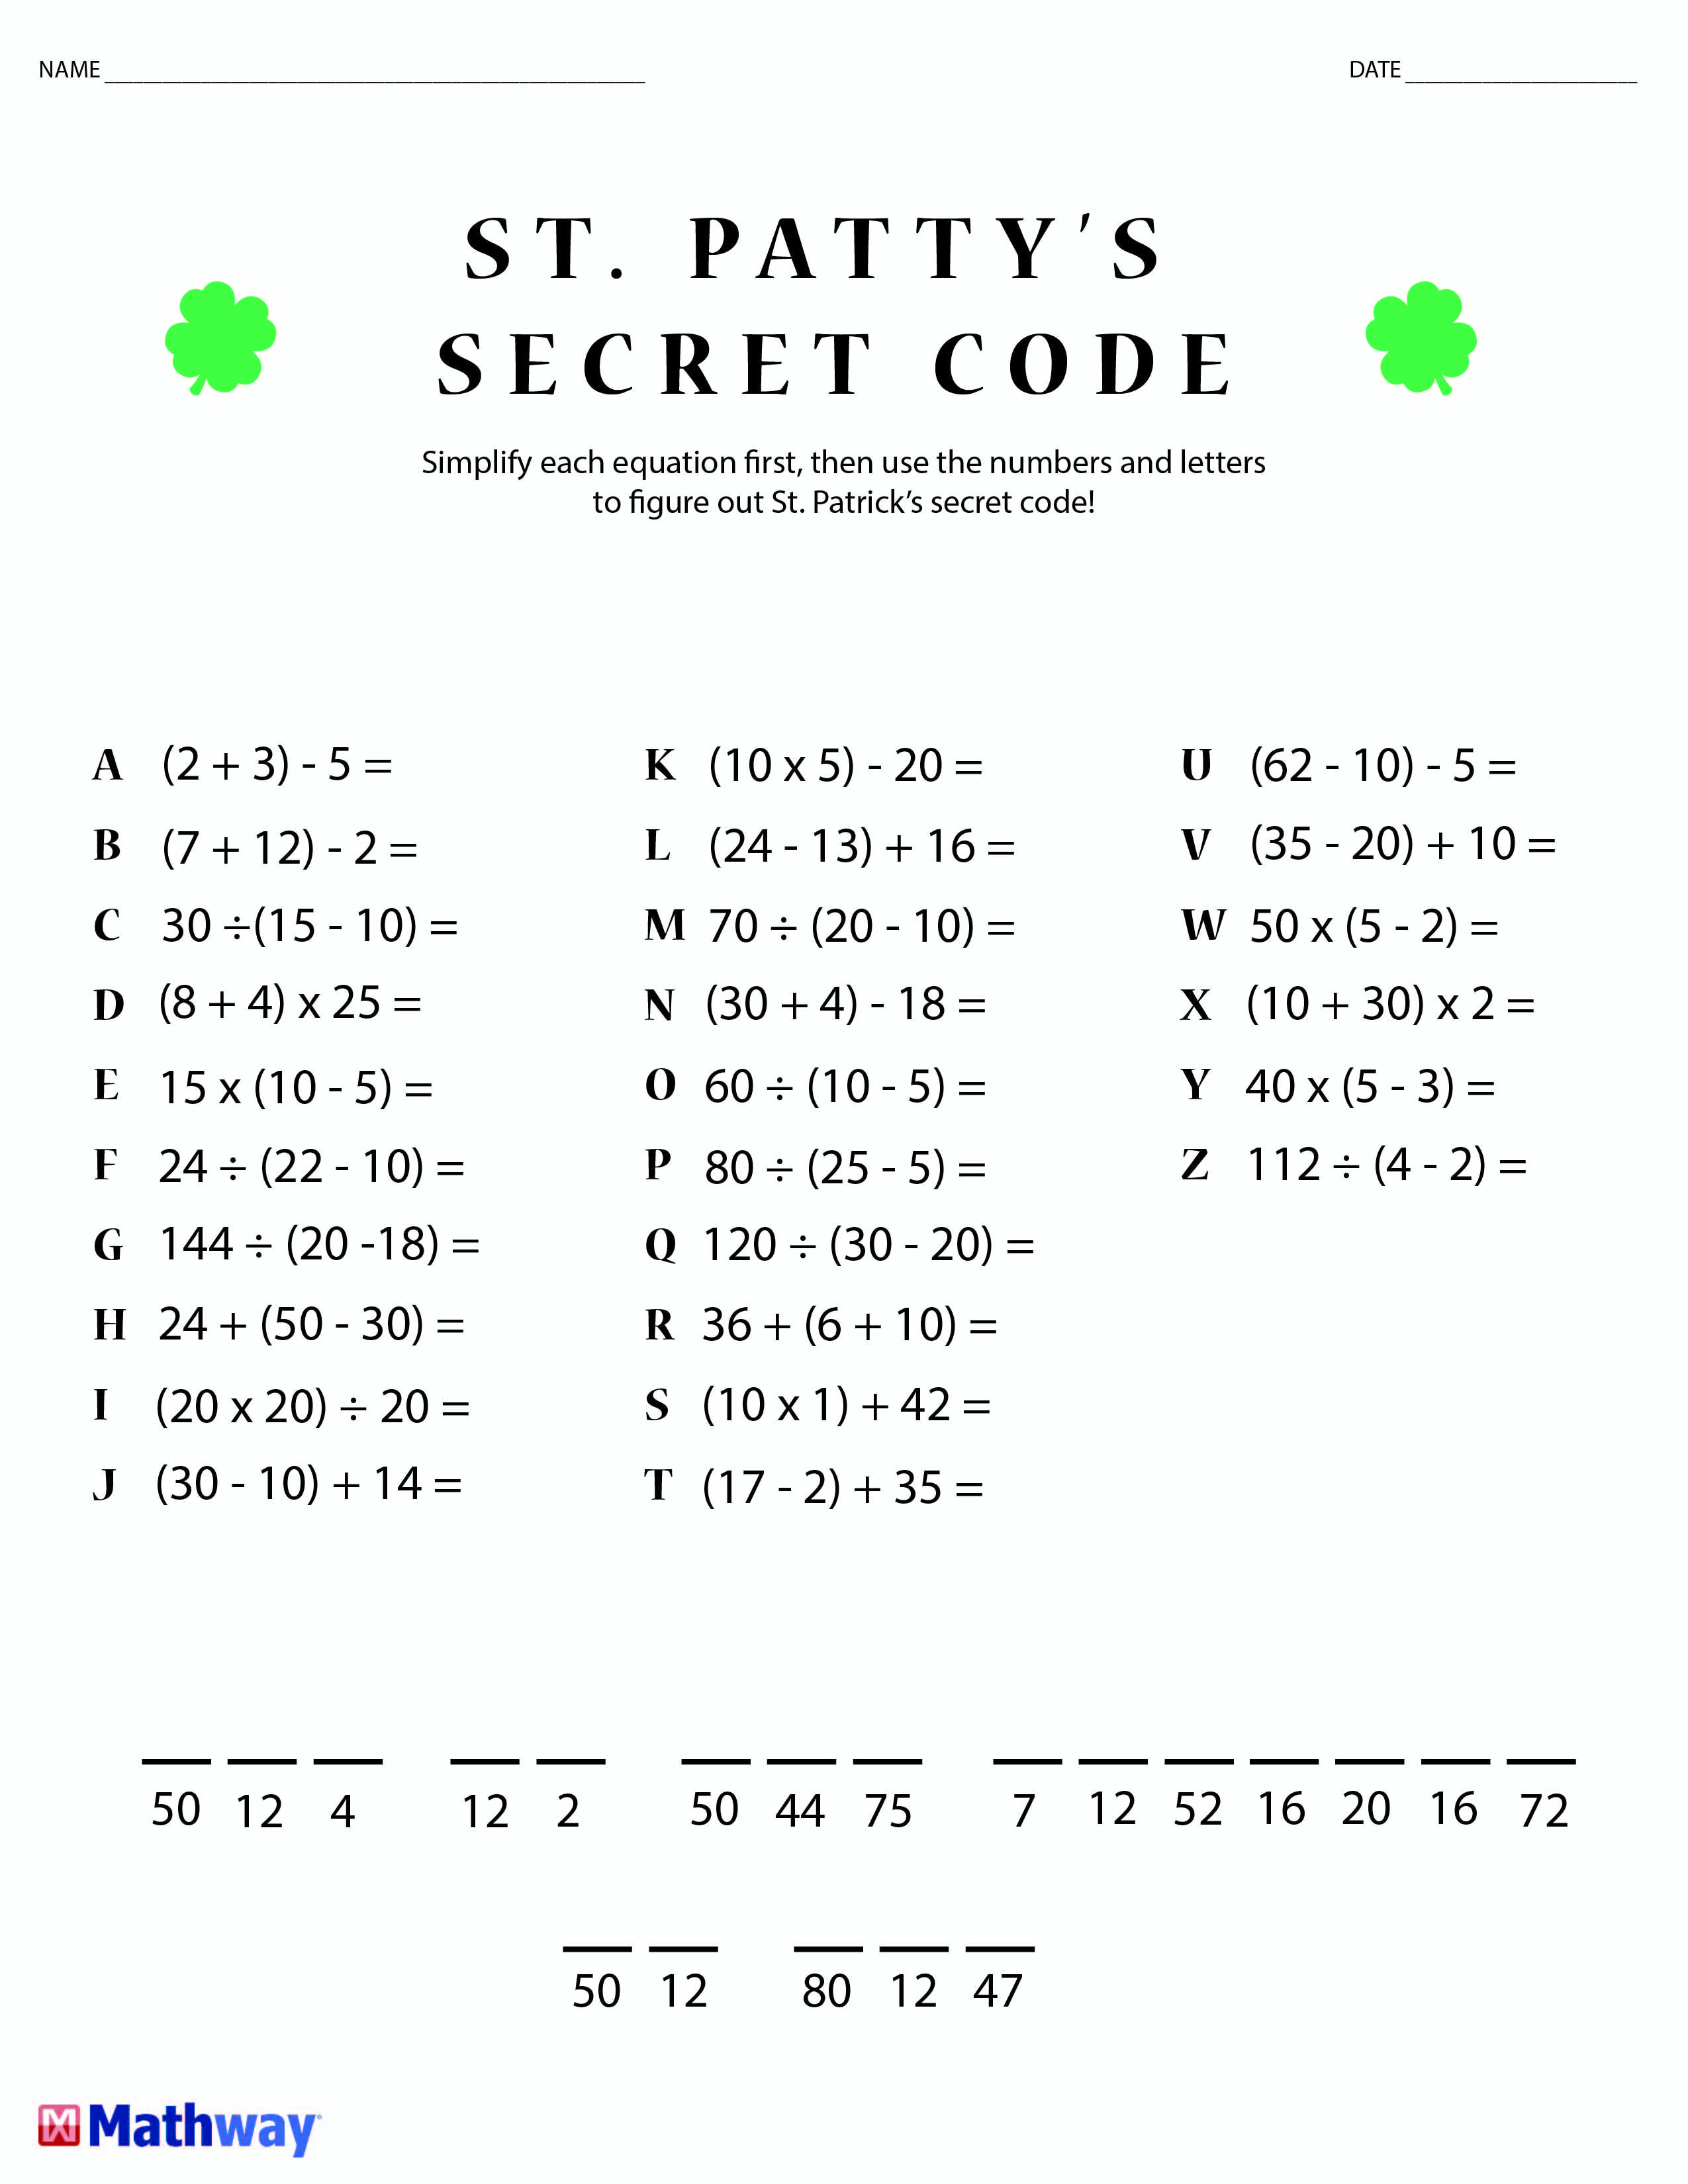 St. Patty's Day Crack The Secret Code Worksheet! Print This One Out | Crack The Code Worksheets Printable Free